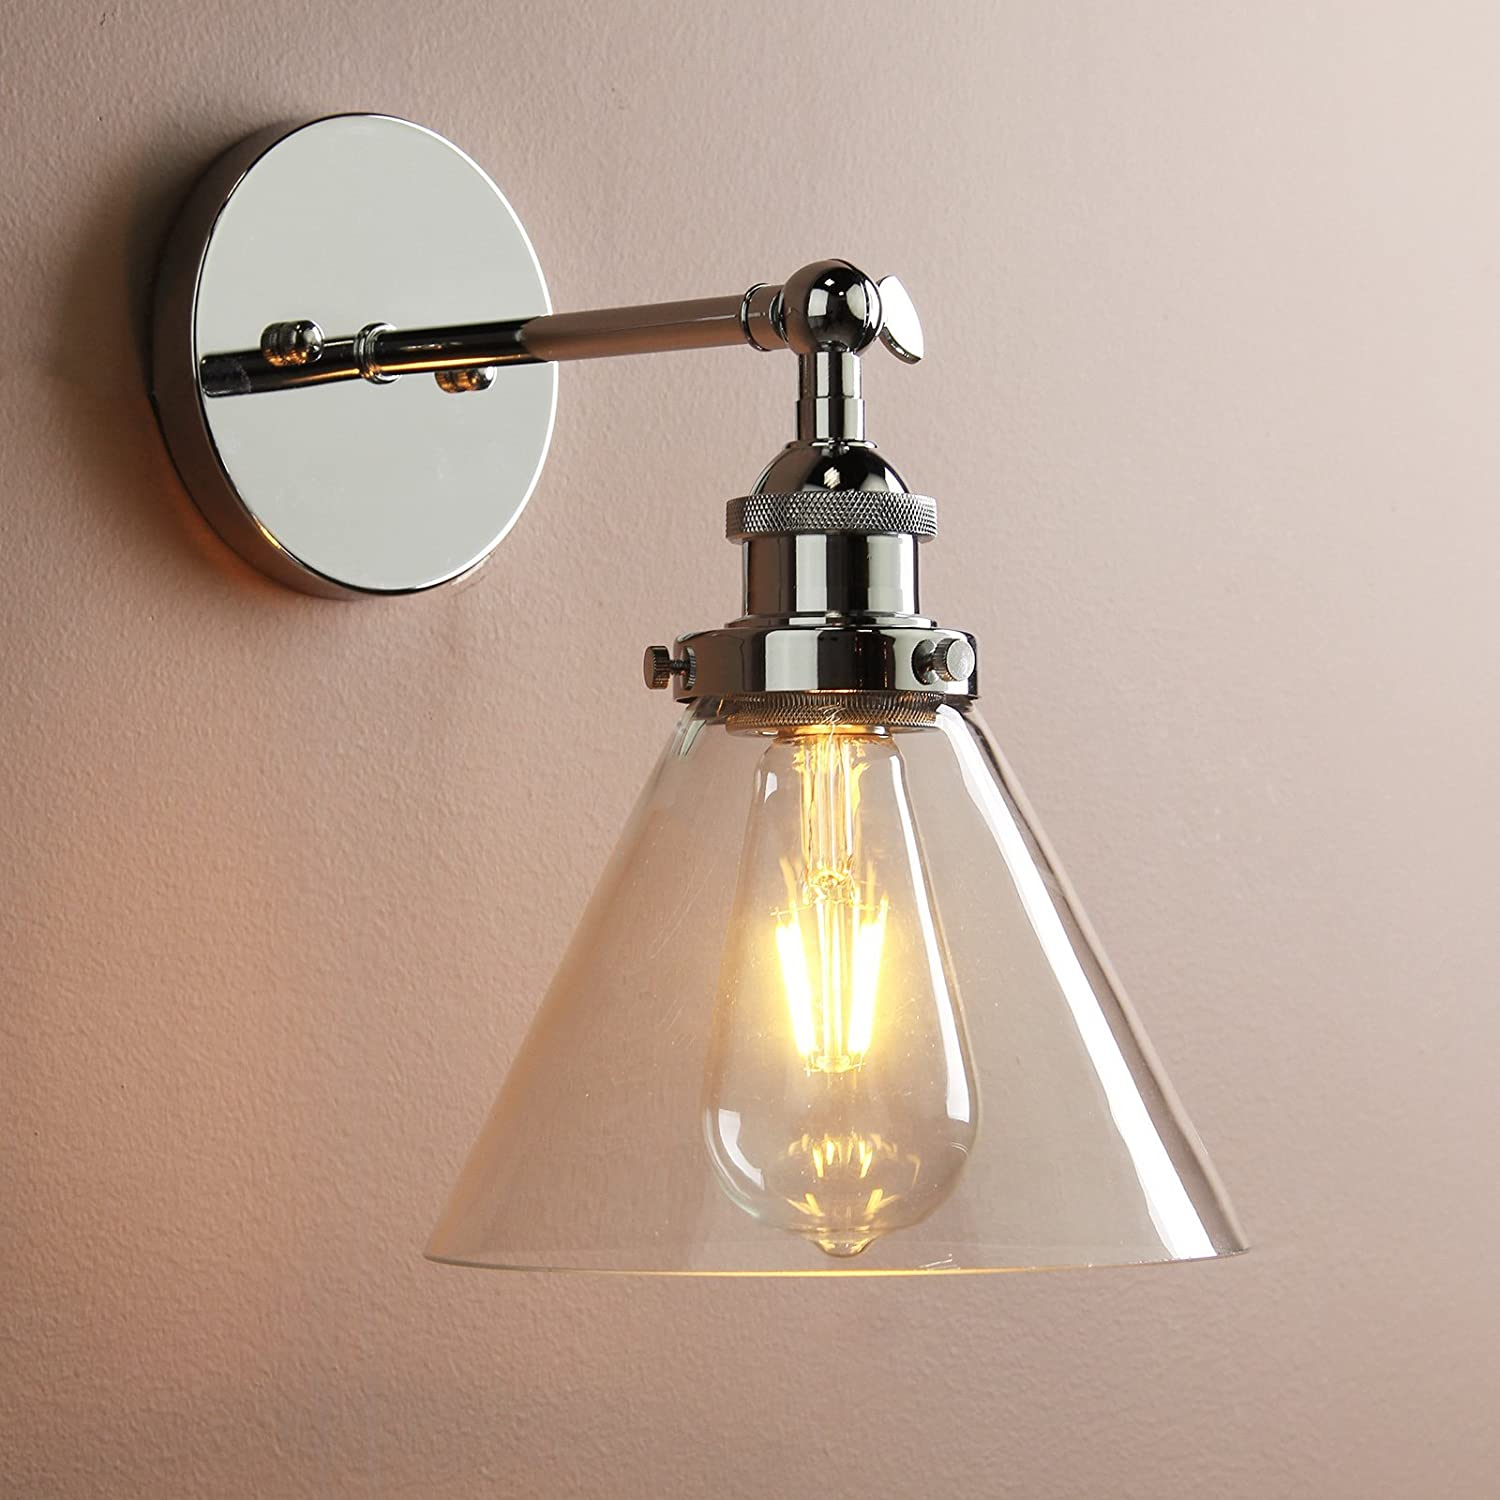 Permo stylish chic vintage industrial edison clear glass shade loft edison clear glass shade loft coffee bar wall sconce retro lighting lampshade fixtures chrome finish clear glass shade amazon kitchen home aloadofball Image collections